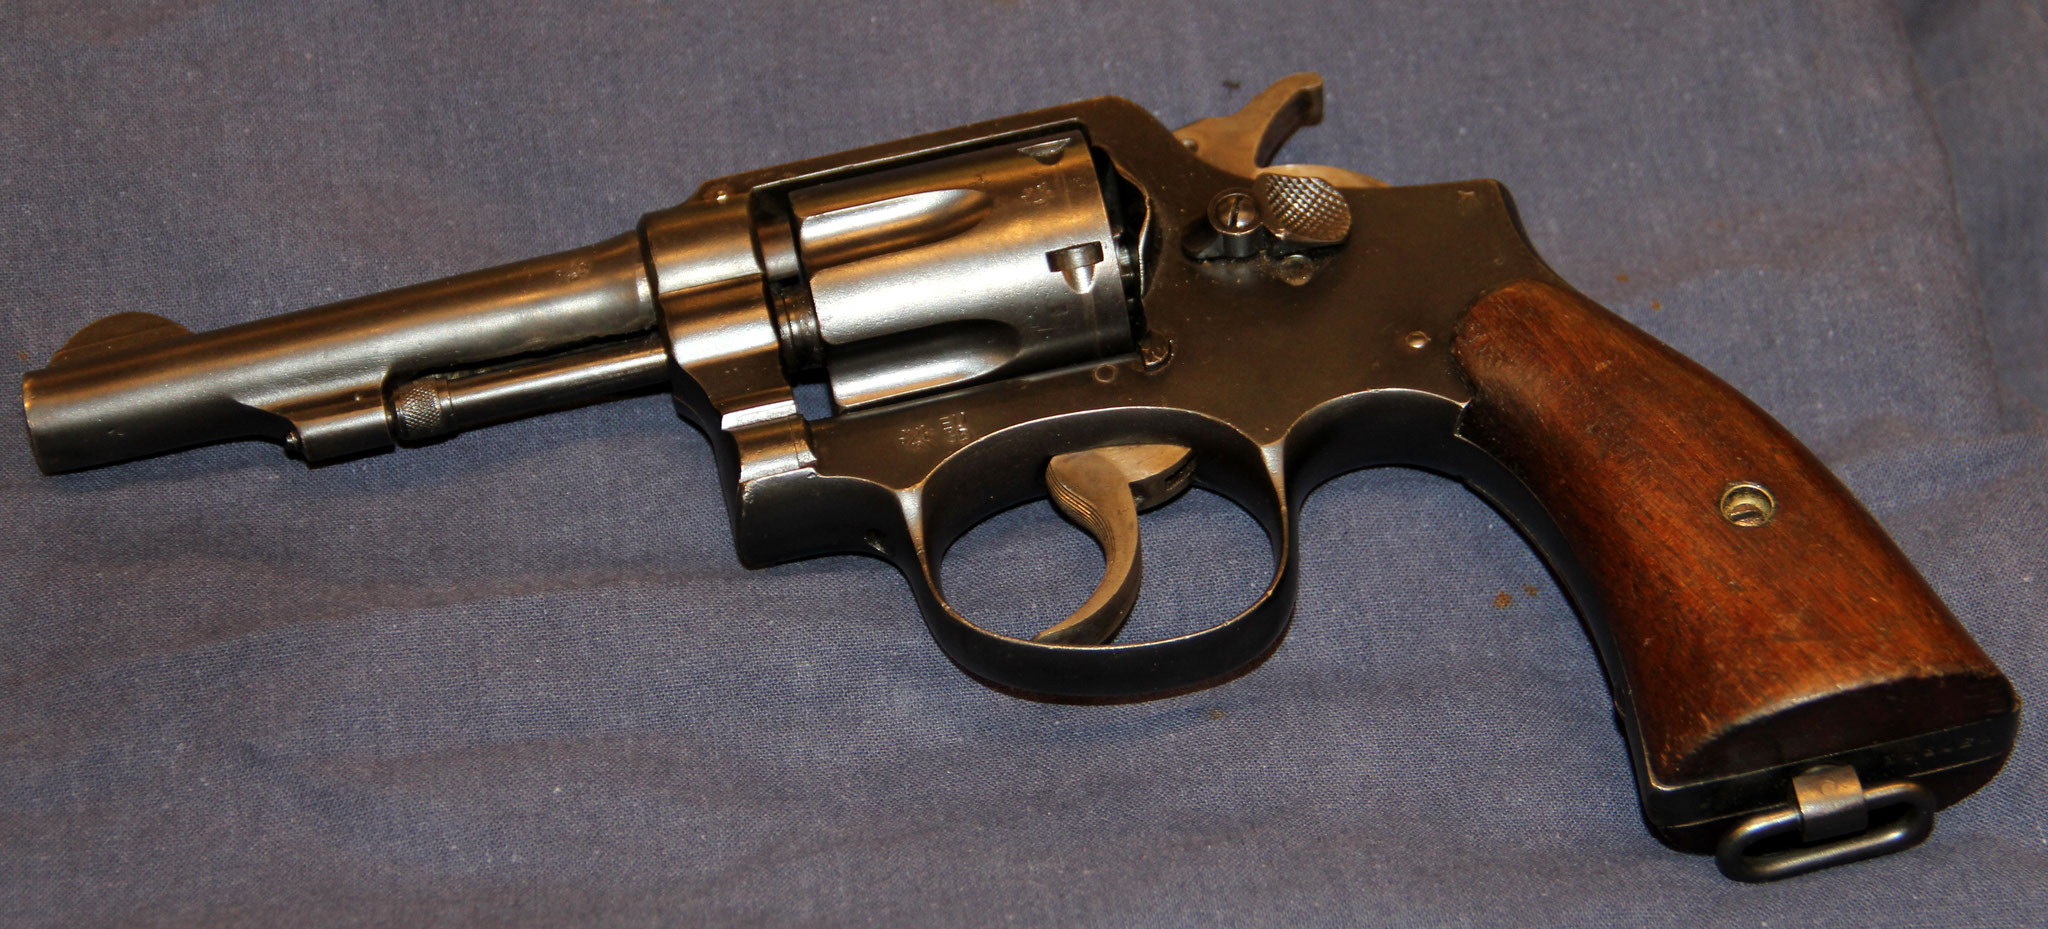 Smith & Wesson. Cert.no. 108 € 575,-